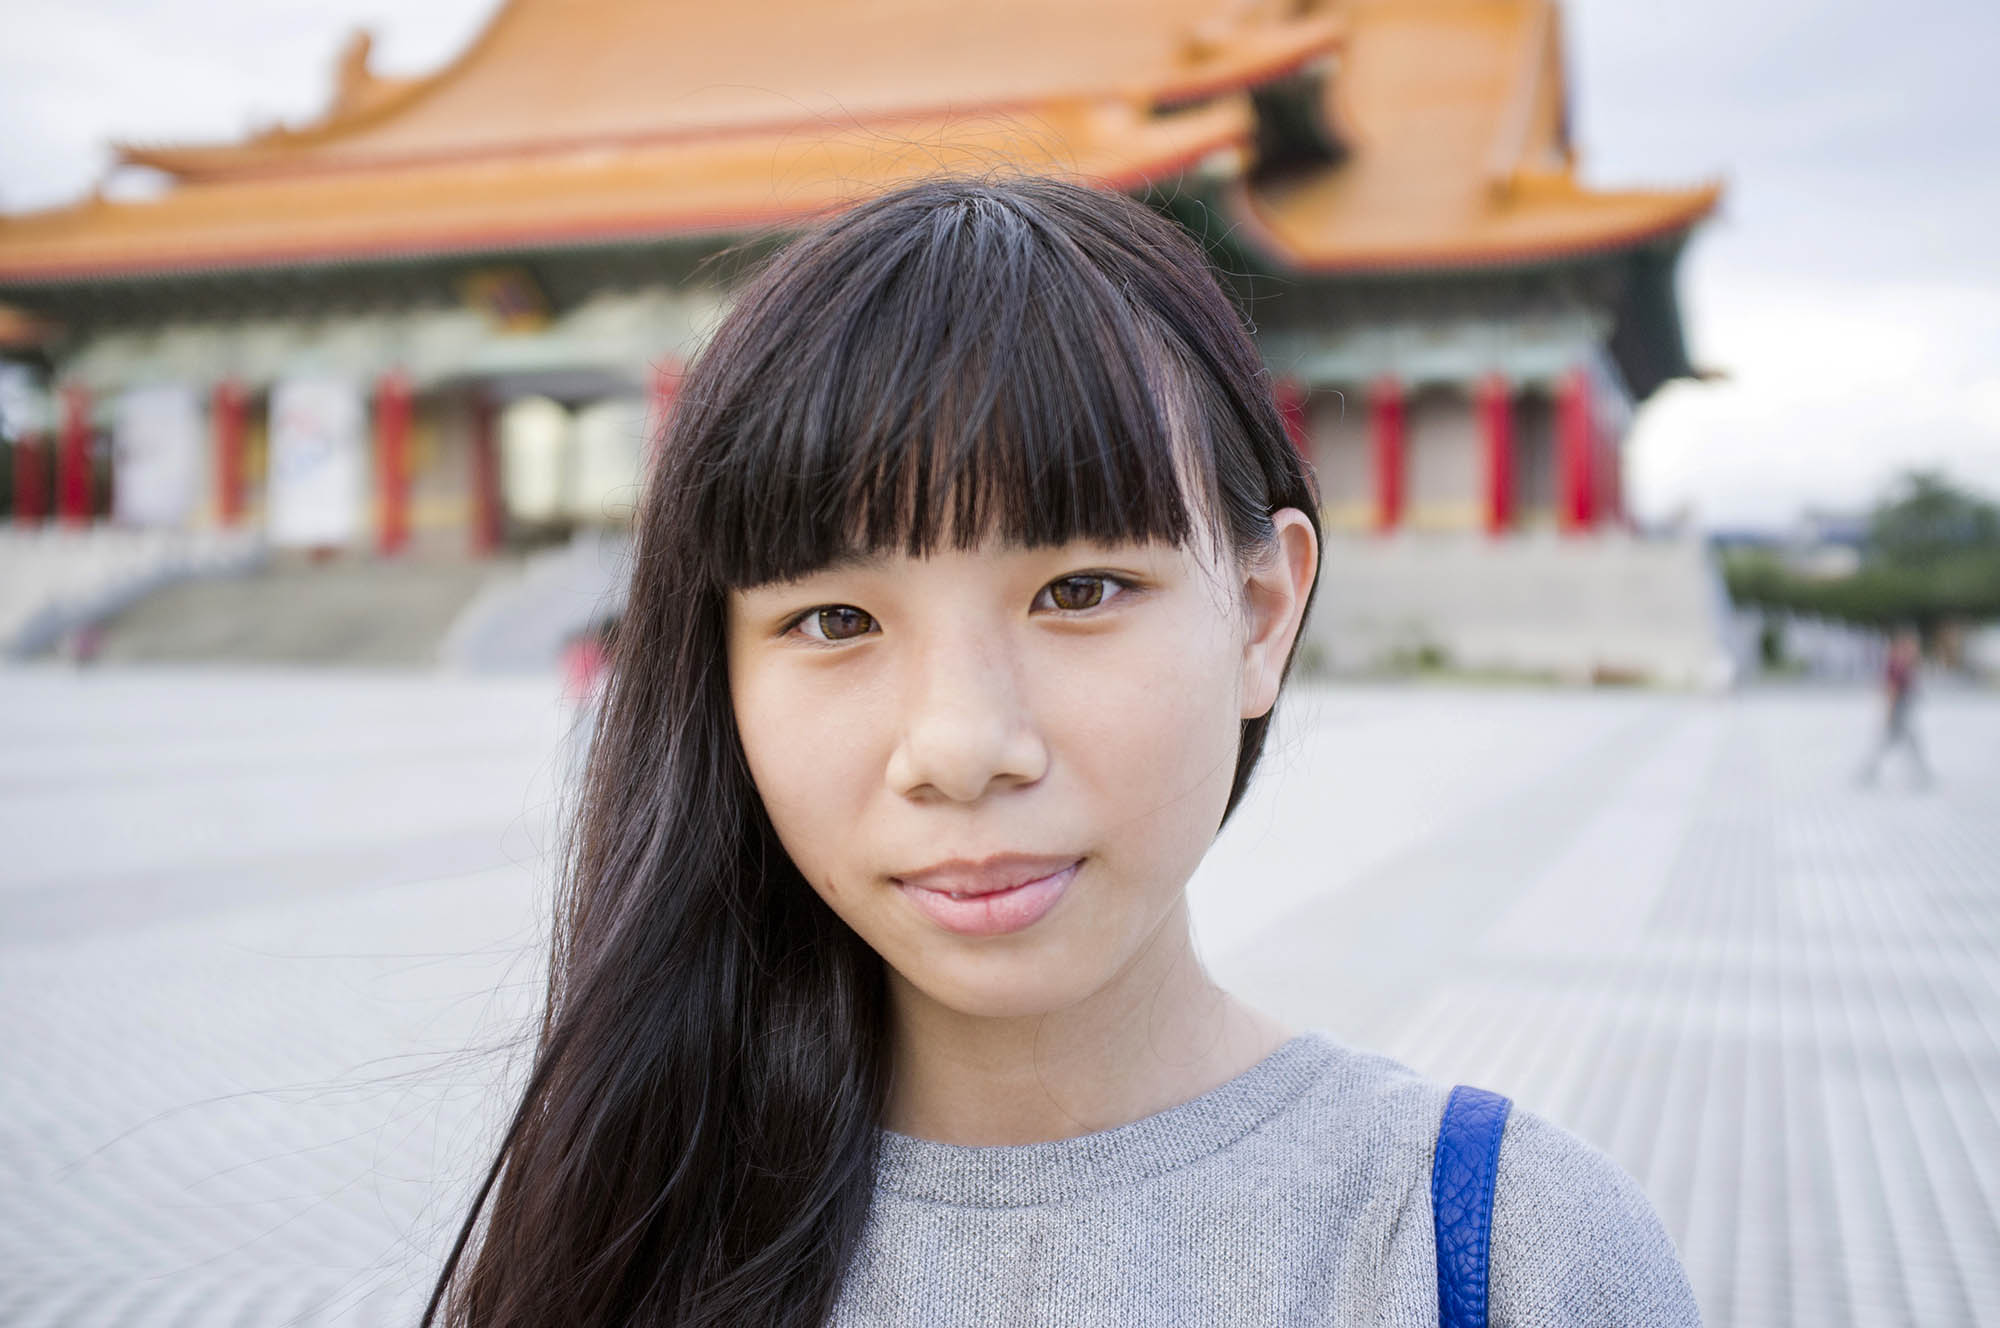 As well as avoiding a sun tan, Chinese women also like to create the illusion of having bigger eyes by wearing contact lenses that make their eyes appear larger.